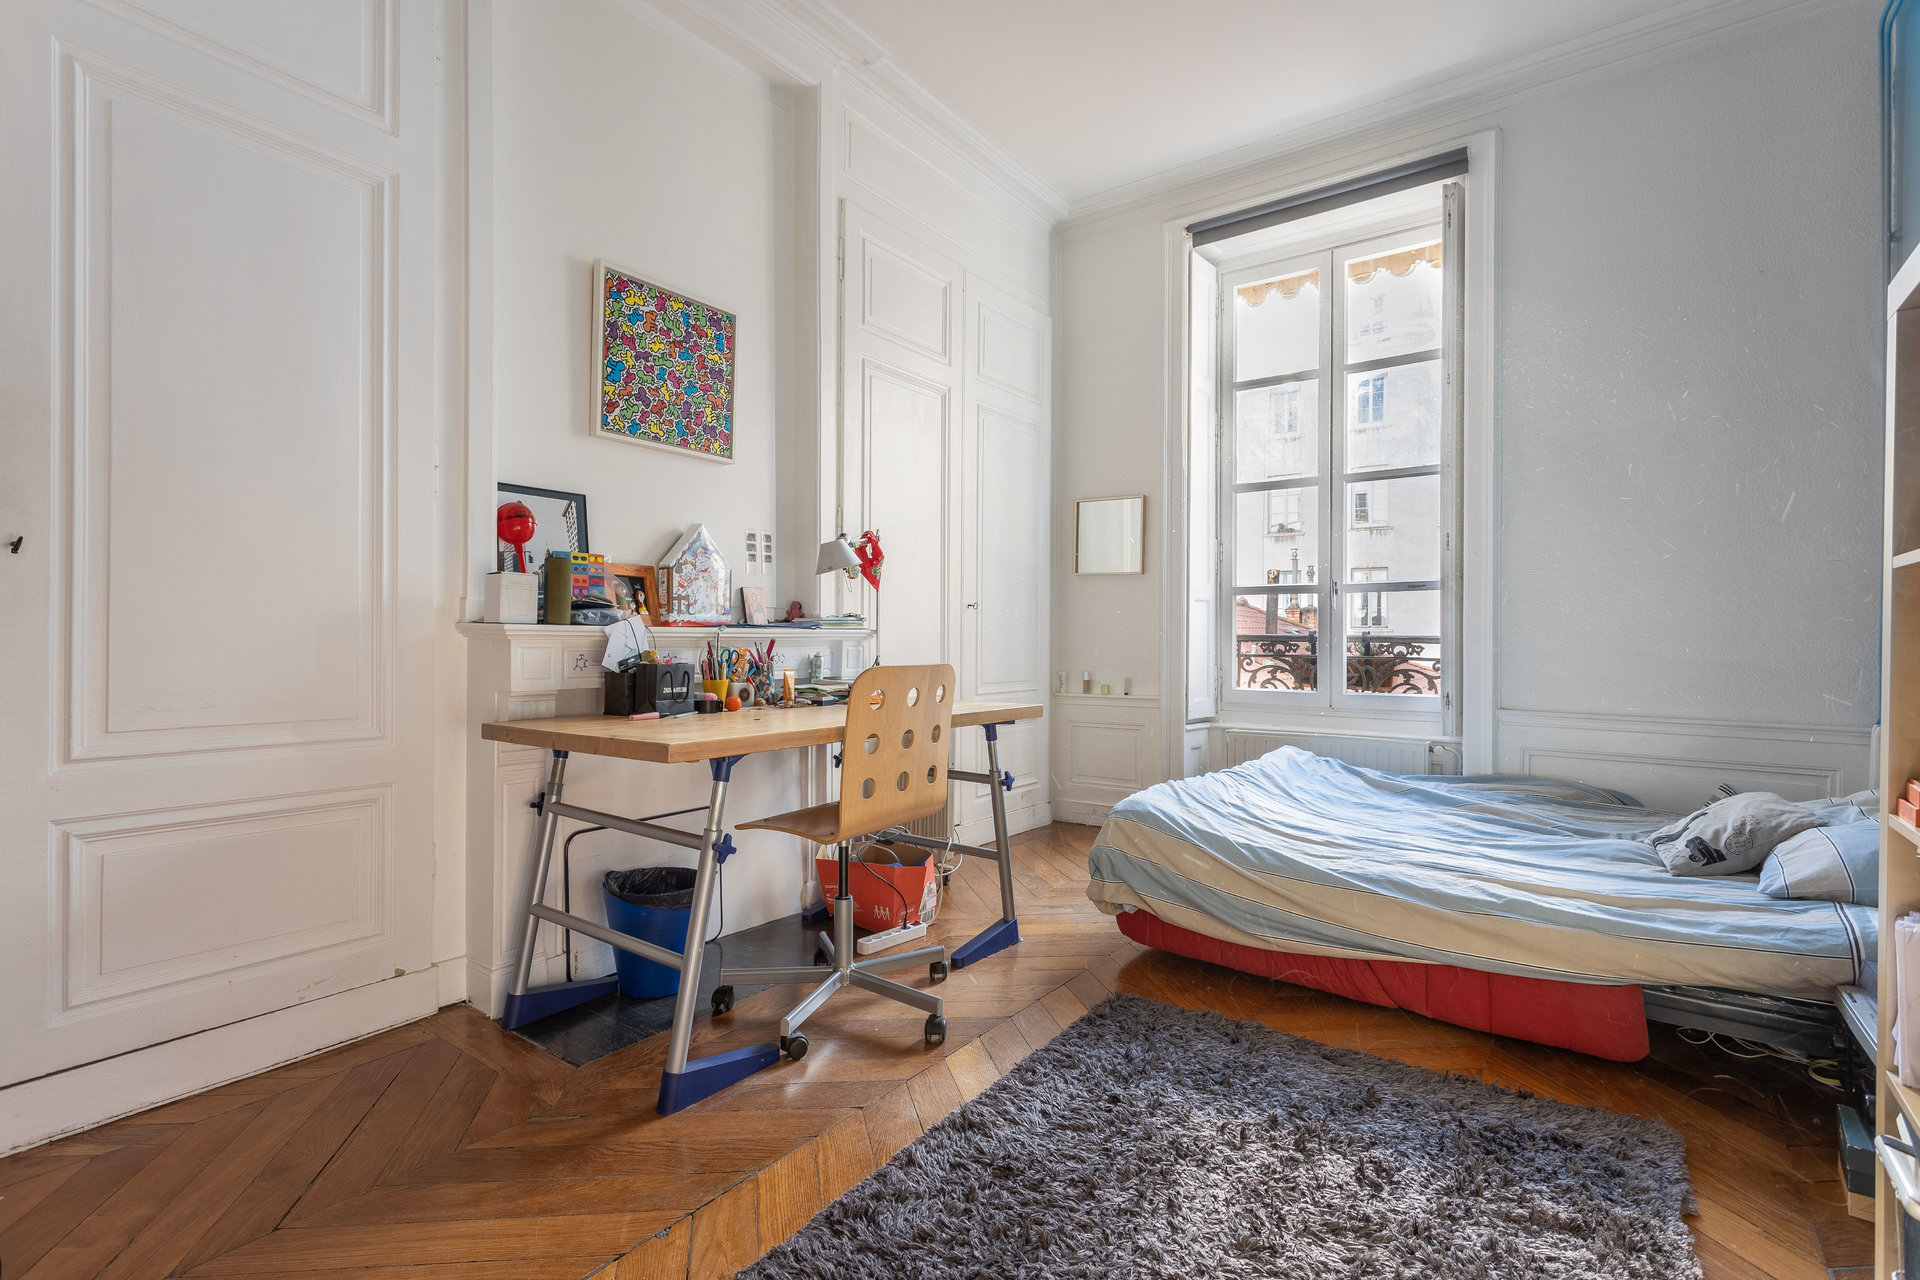 LYON 2 - APPARTEMENT FAMILIAL AINAY - 4 CHAMBRES